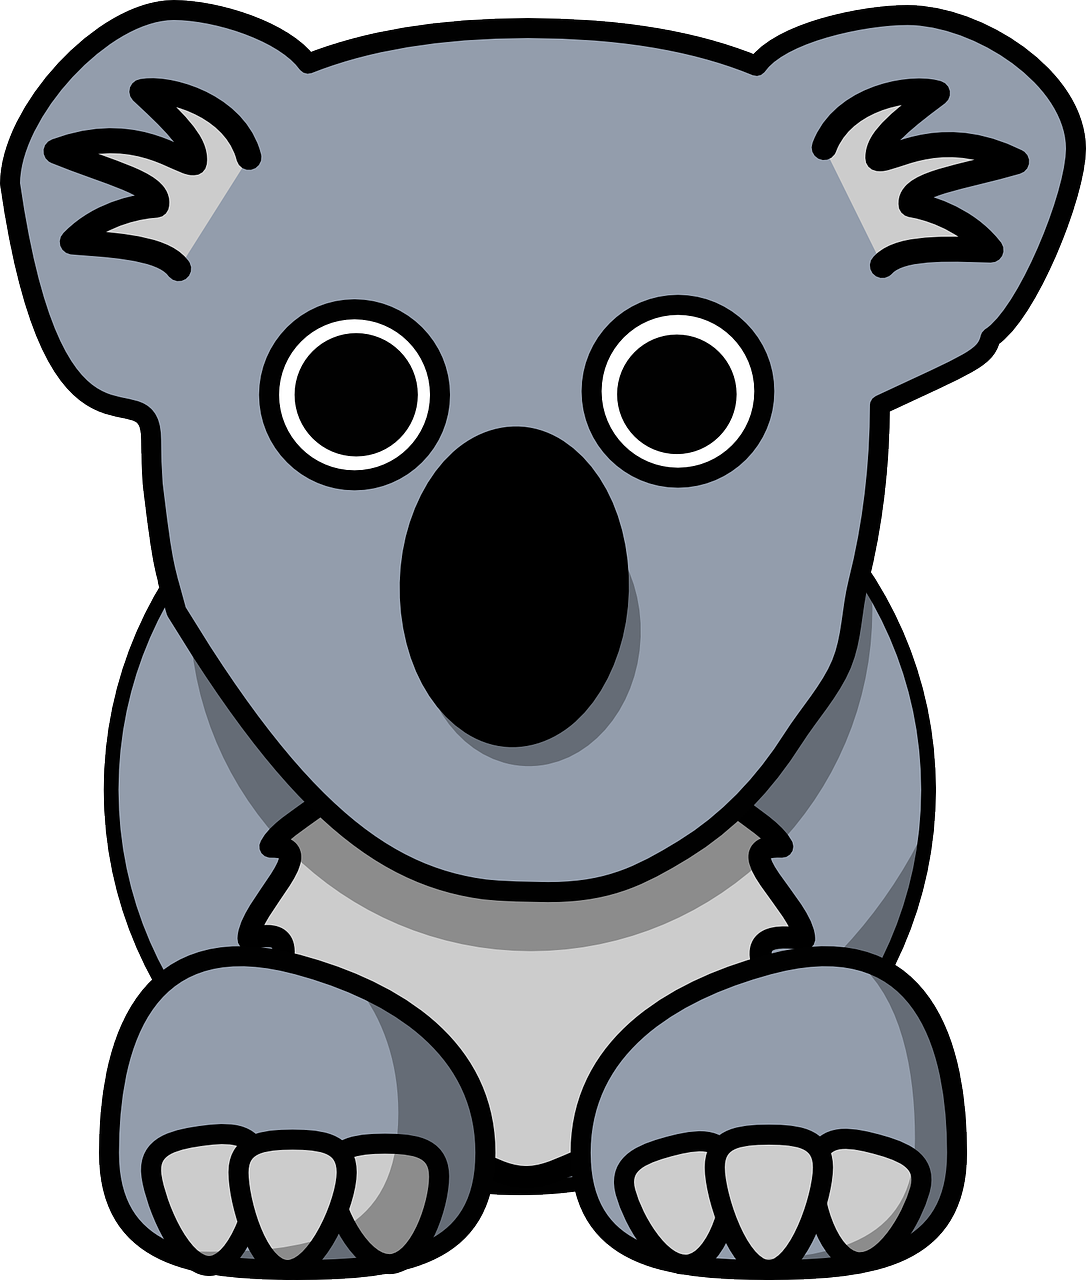 Koala clipart wildlife australian. Australia animal cute grey